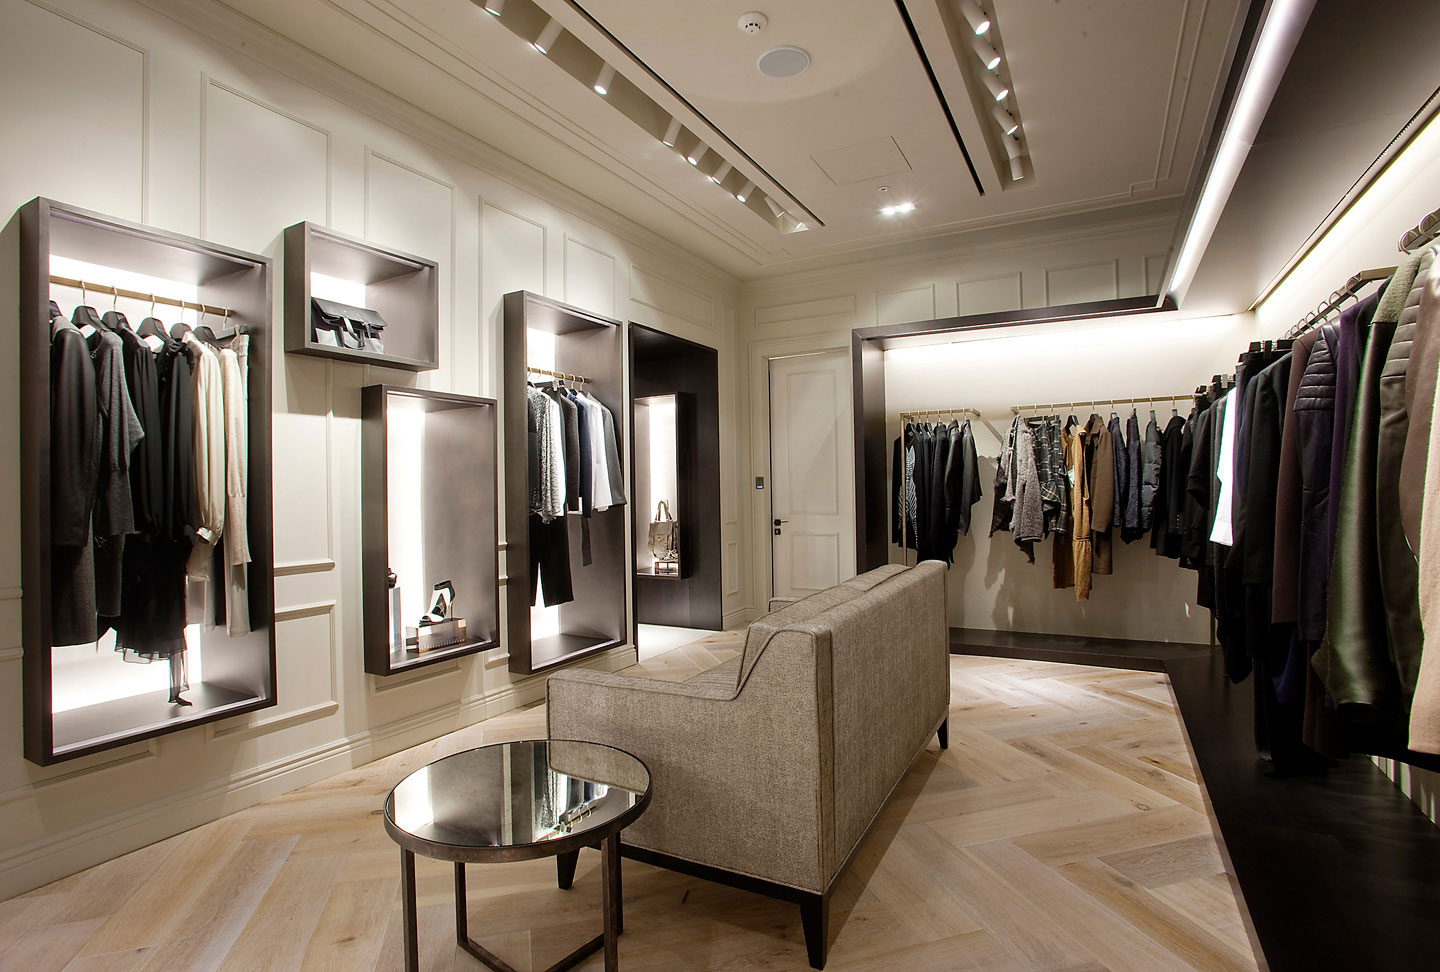 SHINSEGAE BOON THE SHOP  Jeffrey Hutchison  Associates